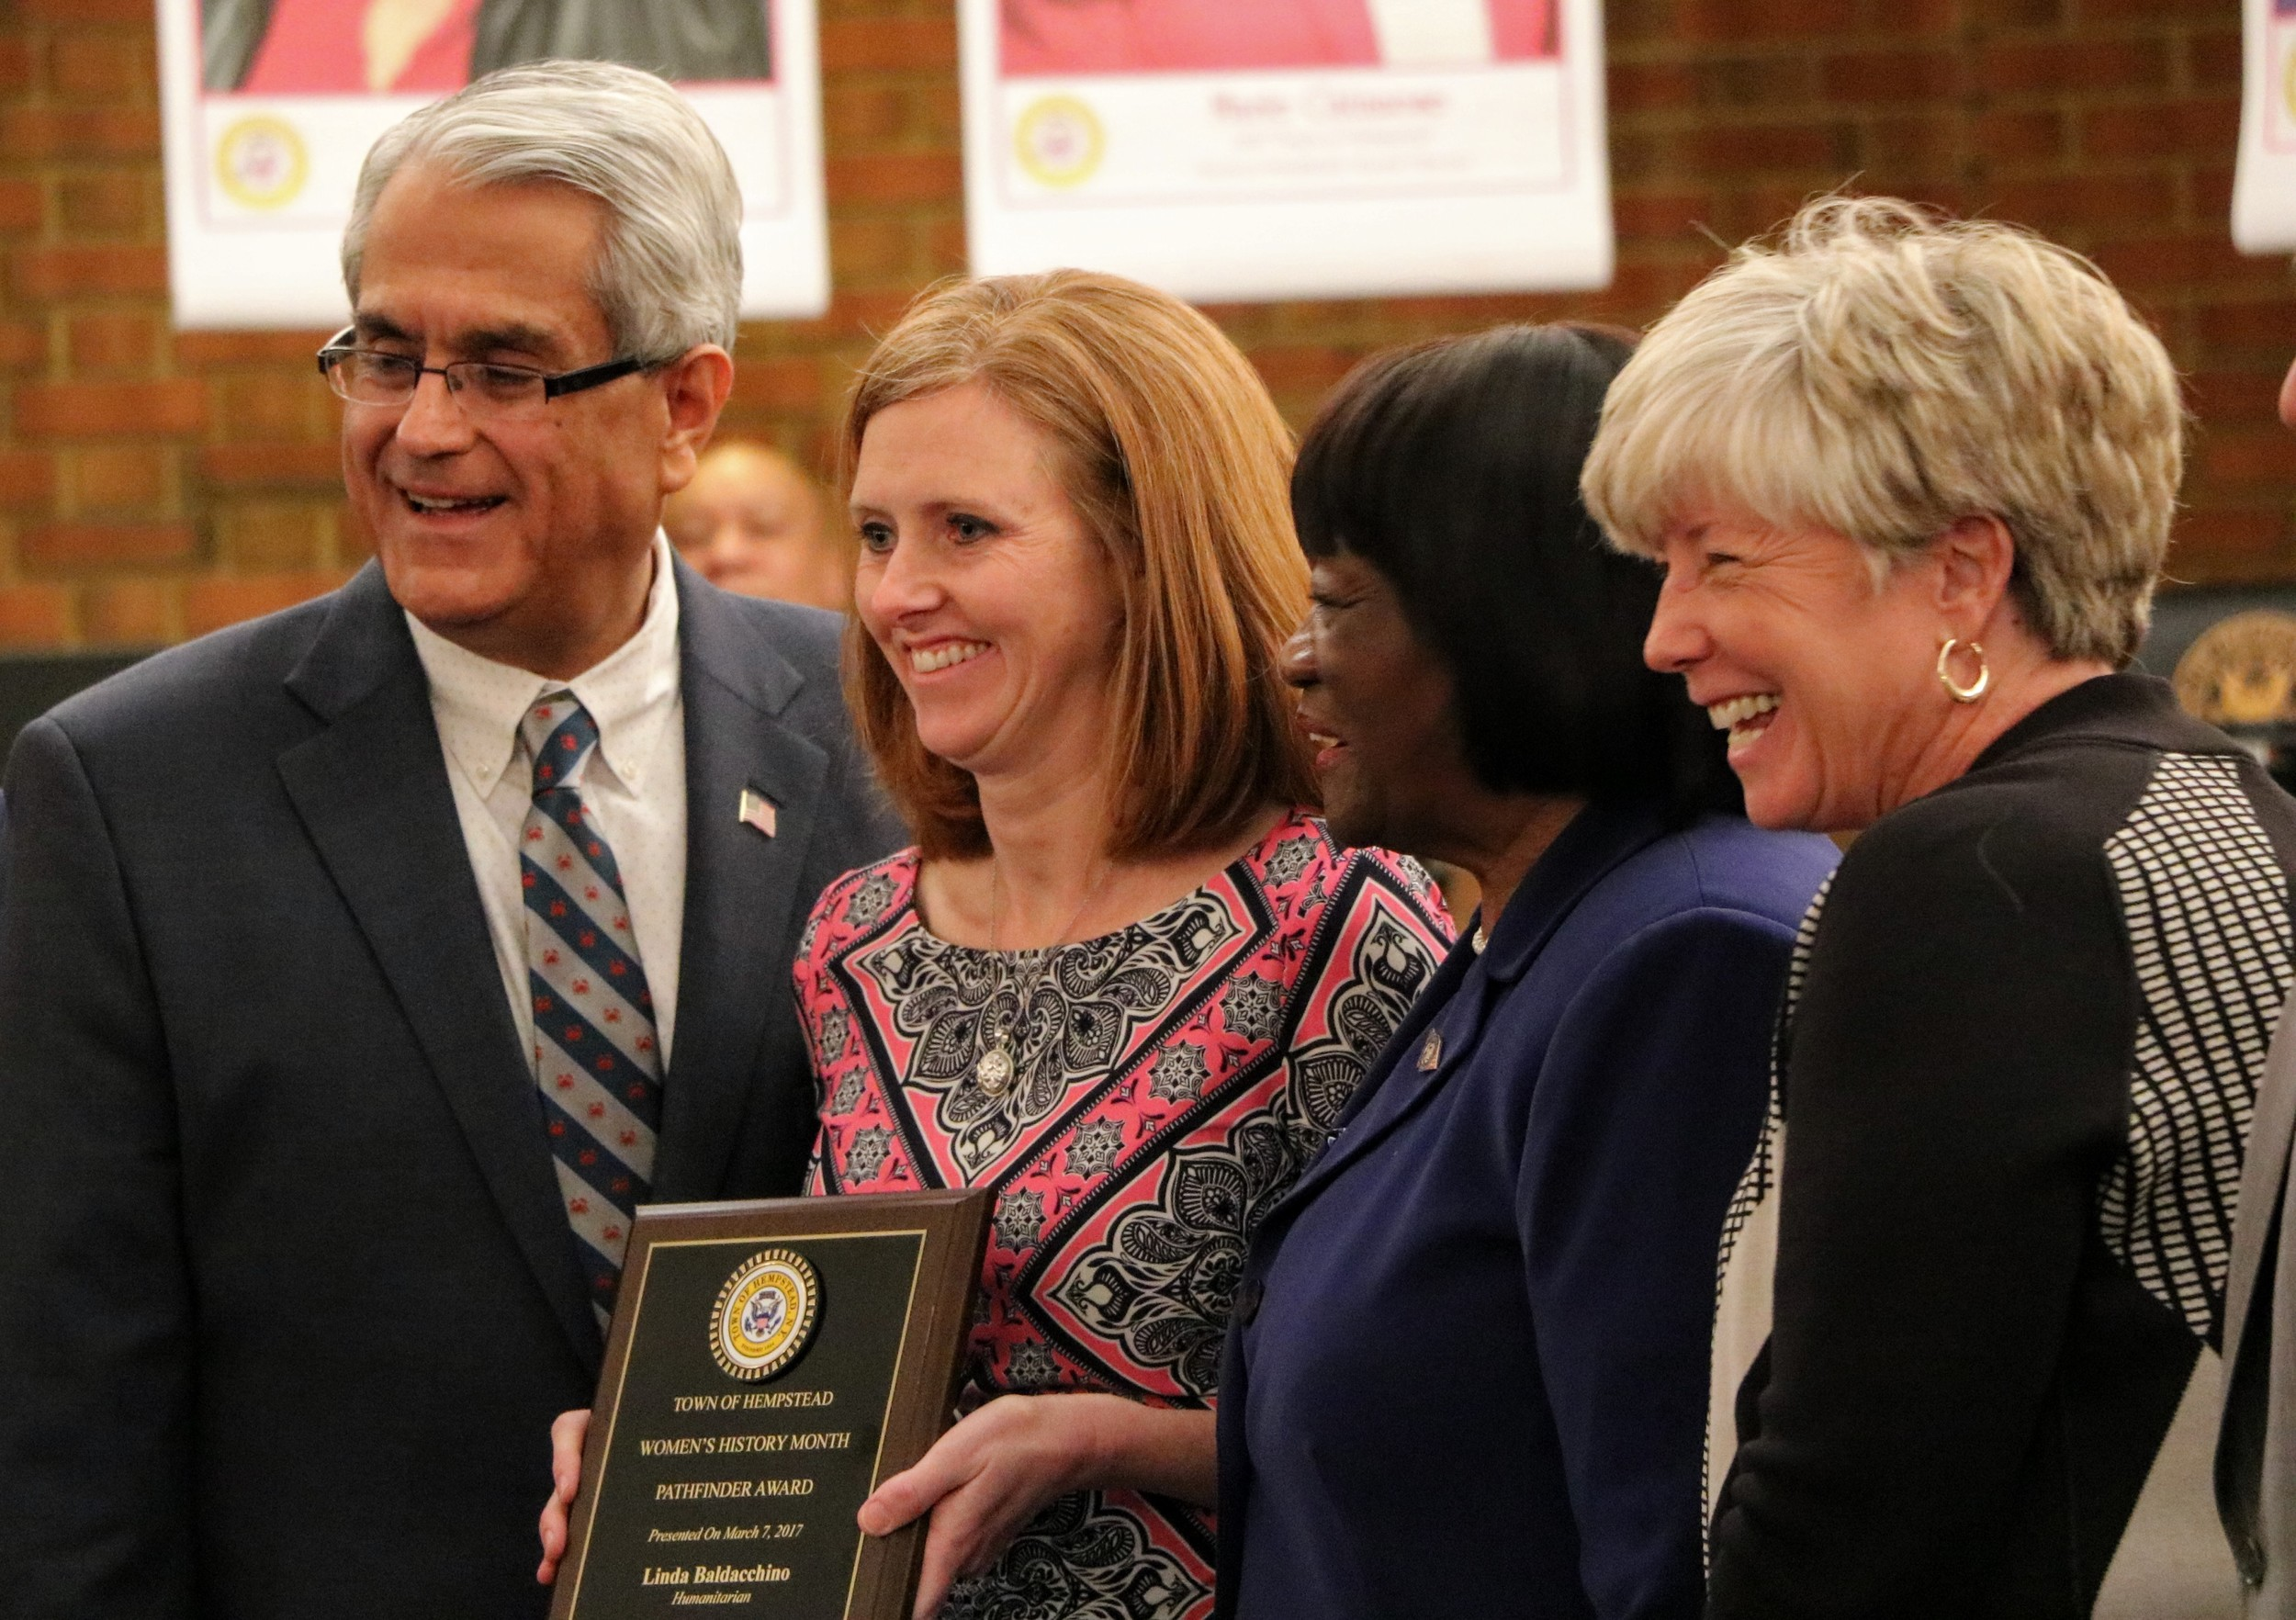 Linda Baldacchino, holding plaque, was presented with the Town of Hempstead's Pathfinder award in the Humanitarian category on March 7.  With her are Town Supervisor Anthony Santino, Malverne Mayor Patti Ann McDonald, far right, and Town Senior Councilwoman Dorothy Goosby.